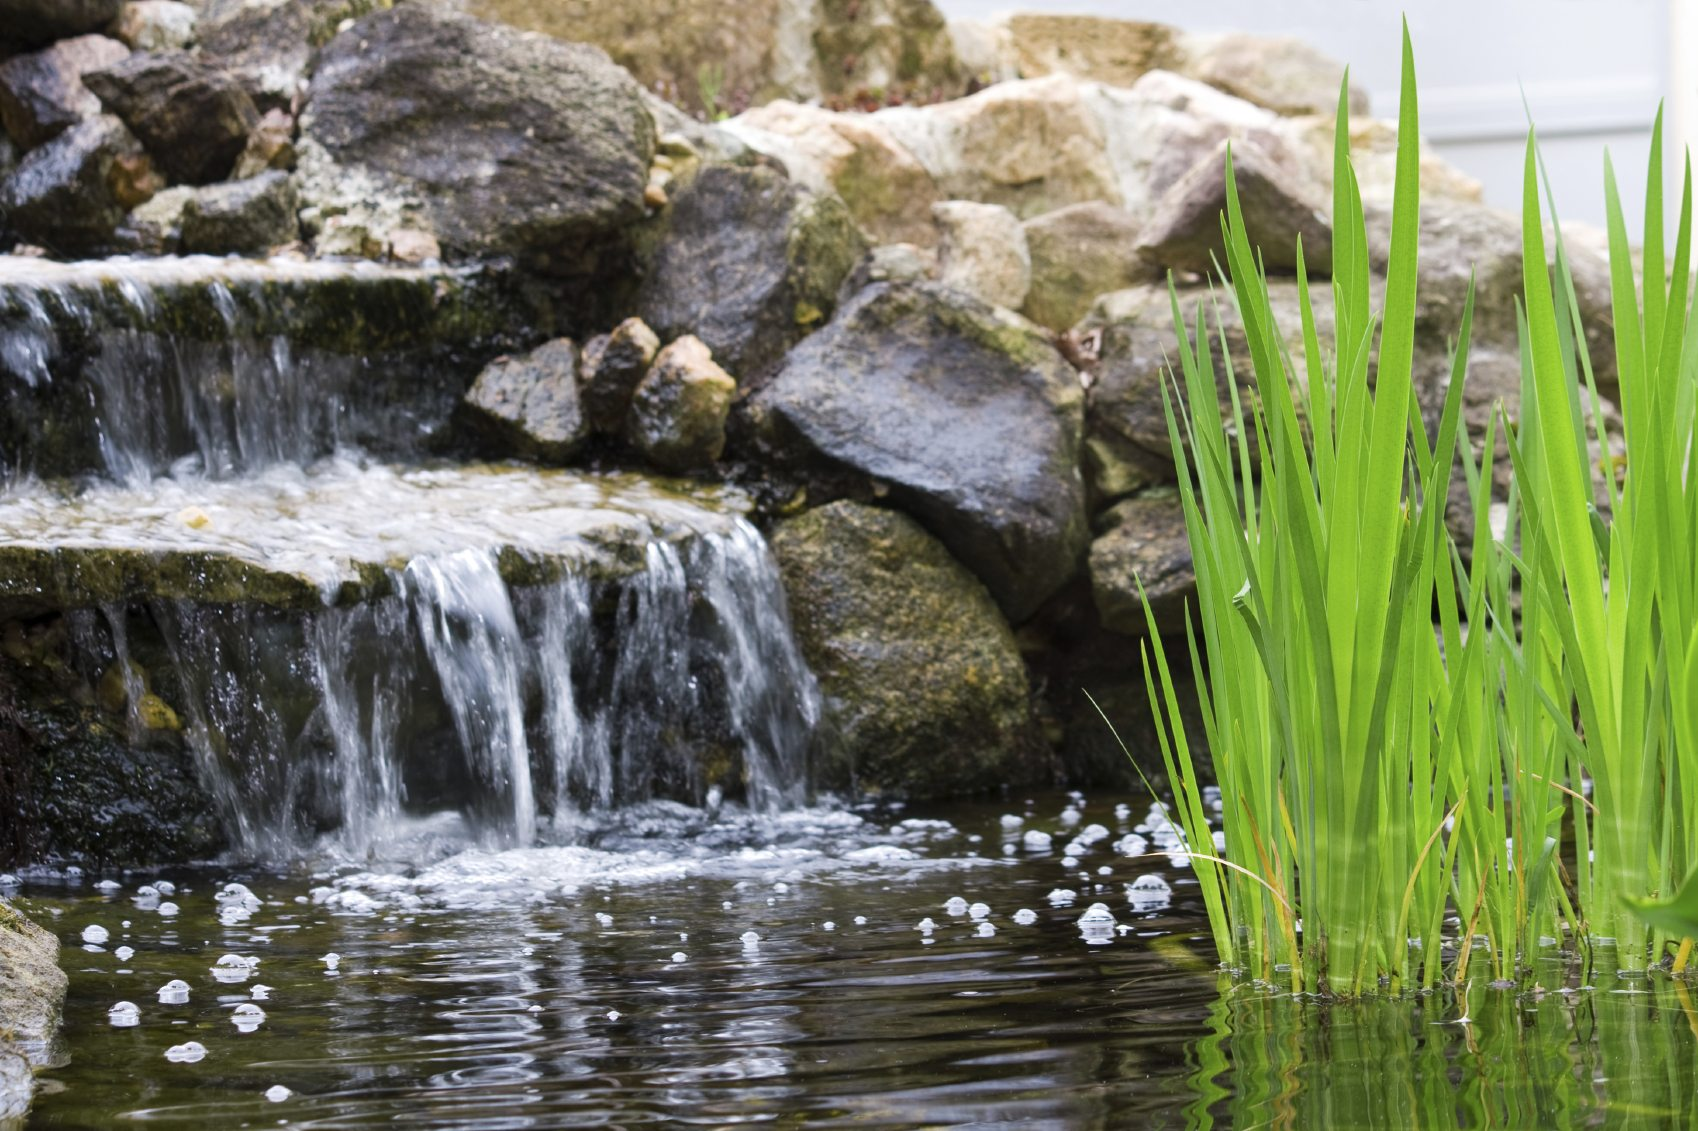 Backyard pond waterfalls how to build a pond waterfall for Build your own waterfall pond